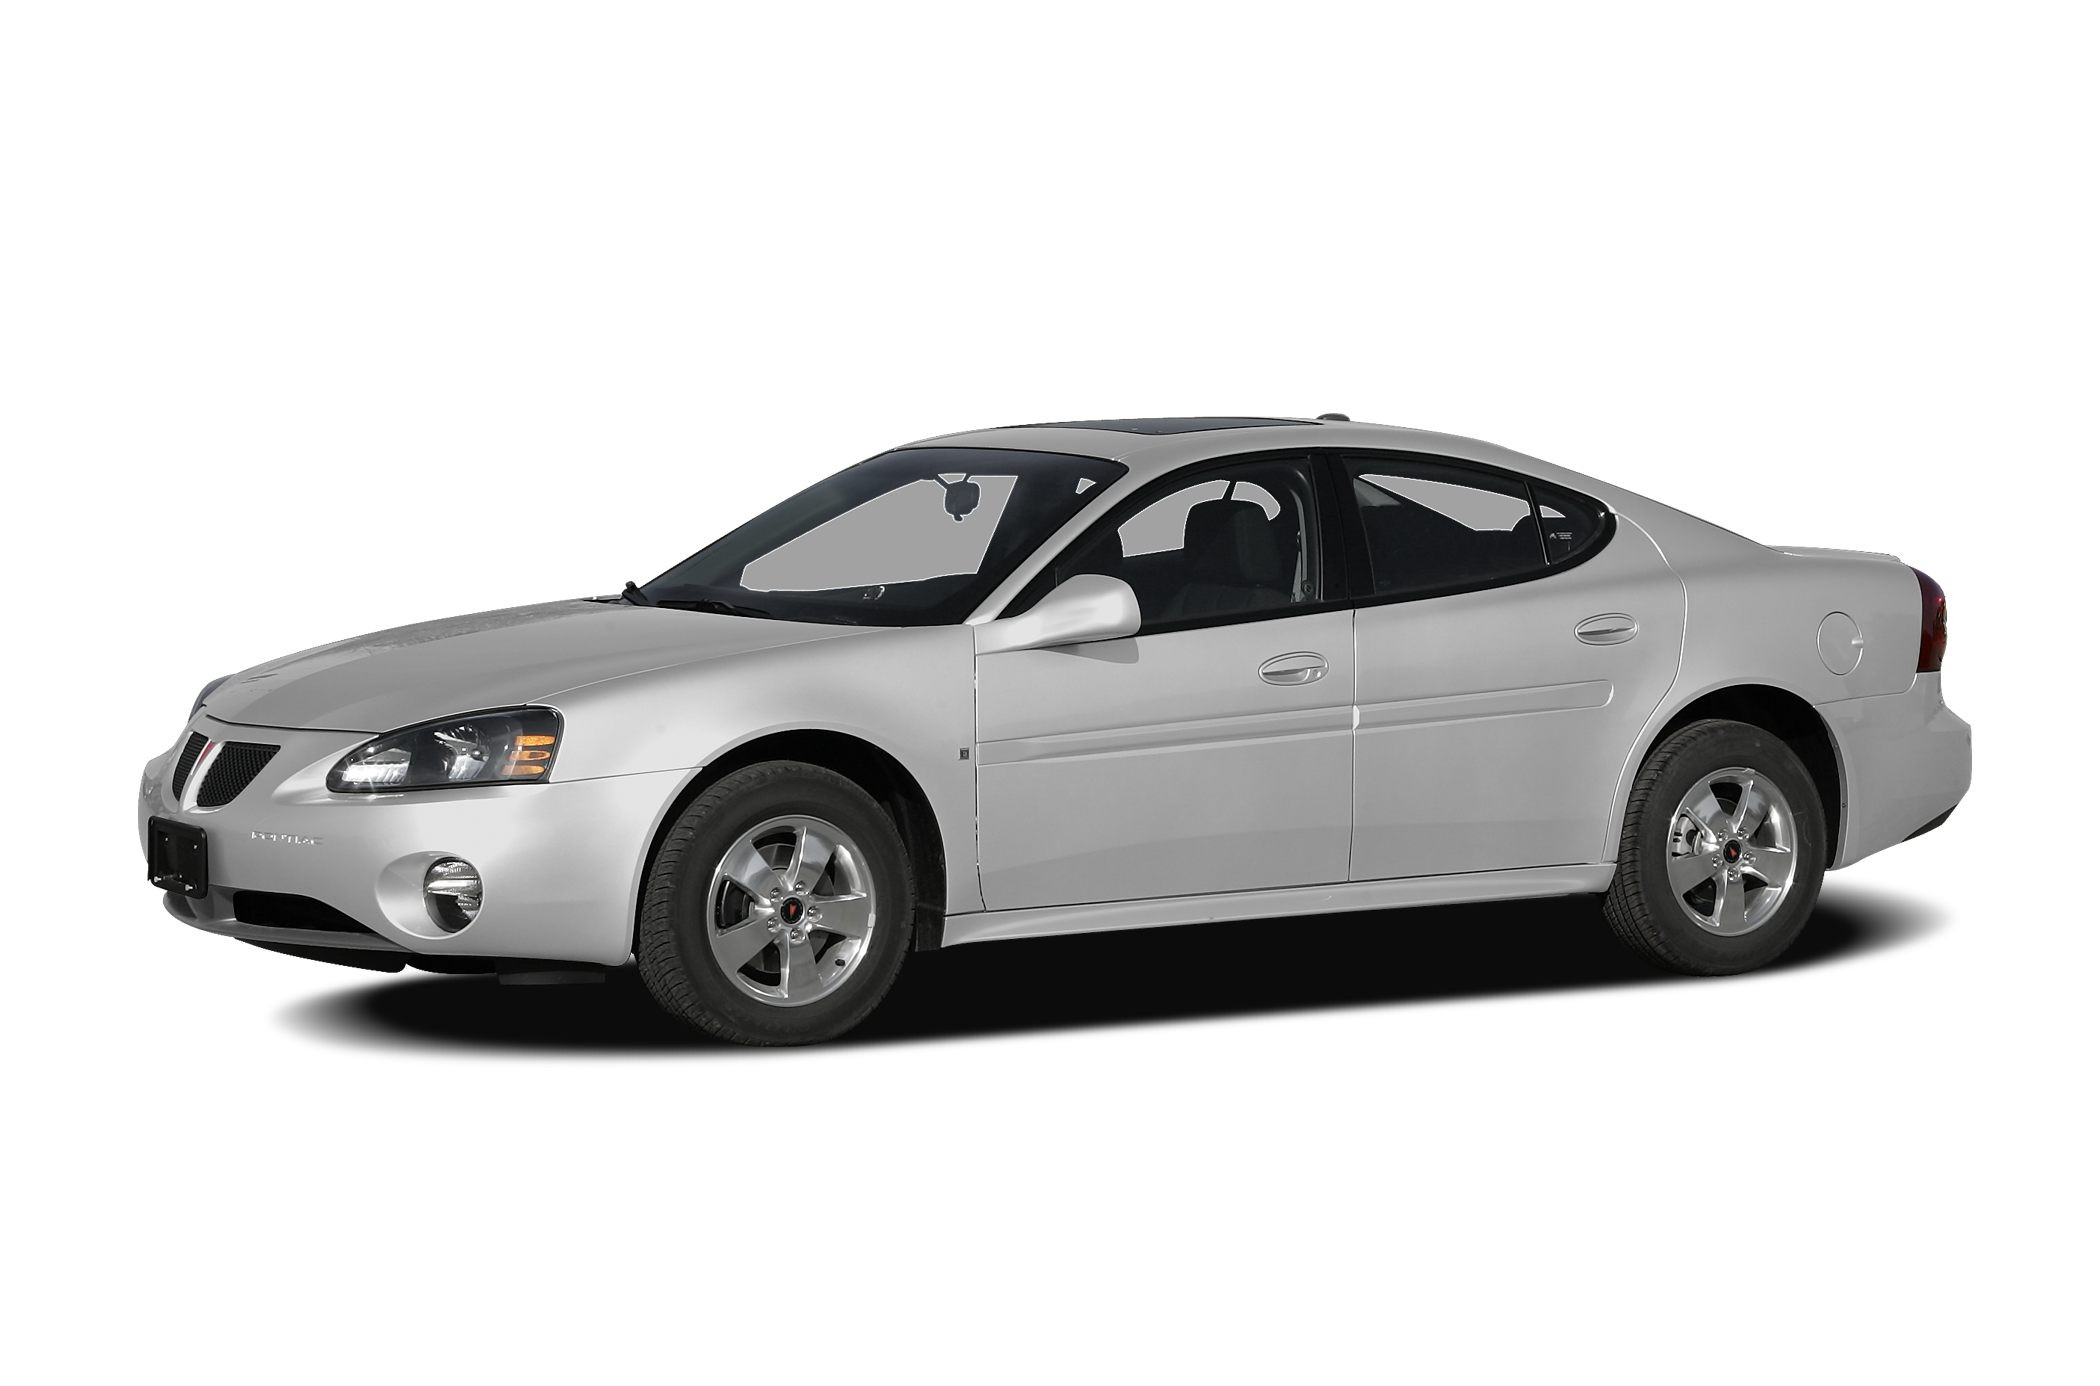 2006 Grand Prix Engine Diagram 2008 Pontiac Grand Prix Specs and Prices Of 2006 Grand Prix Engine Diagram